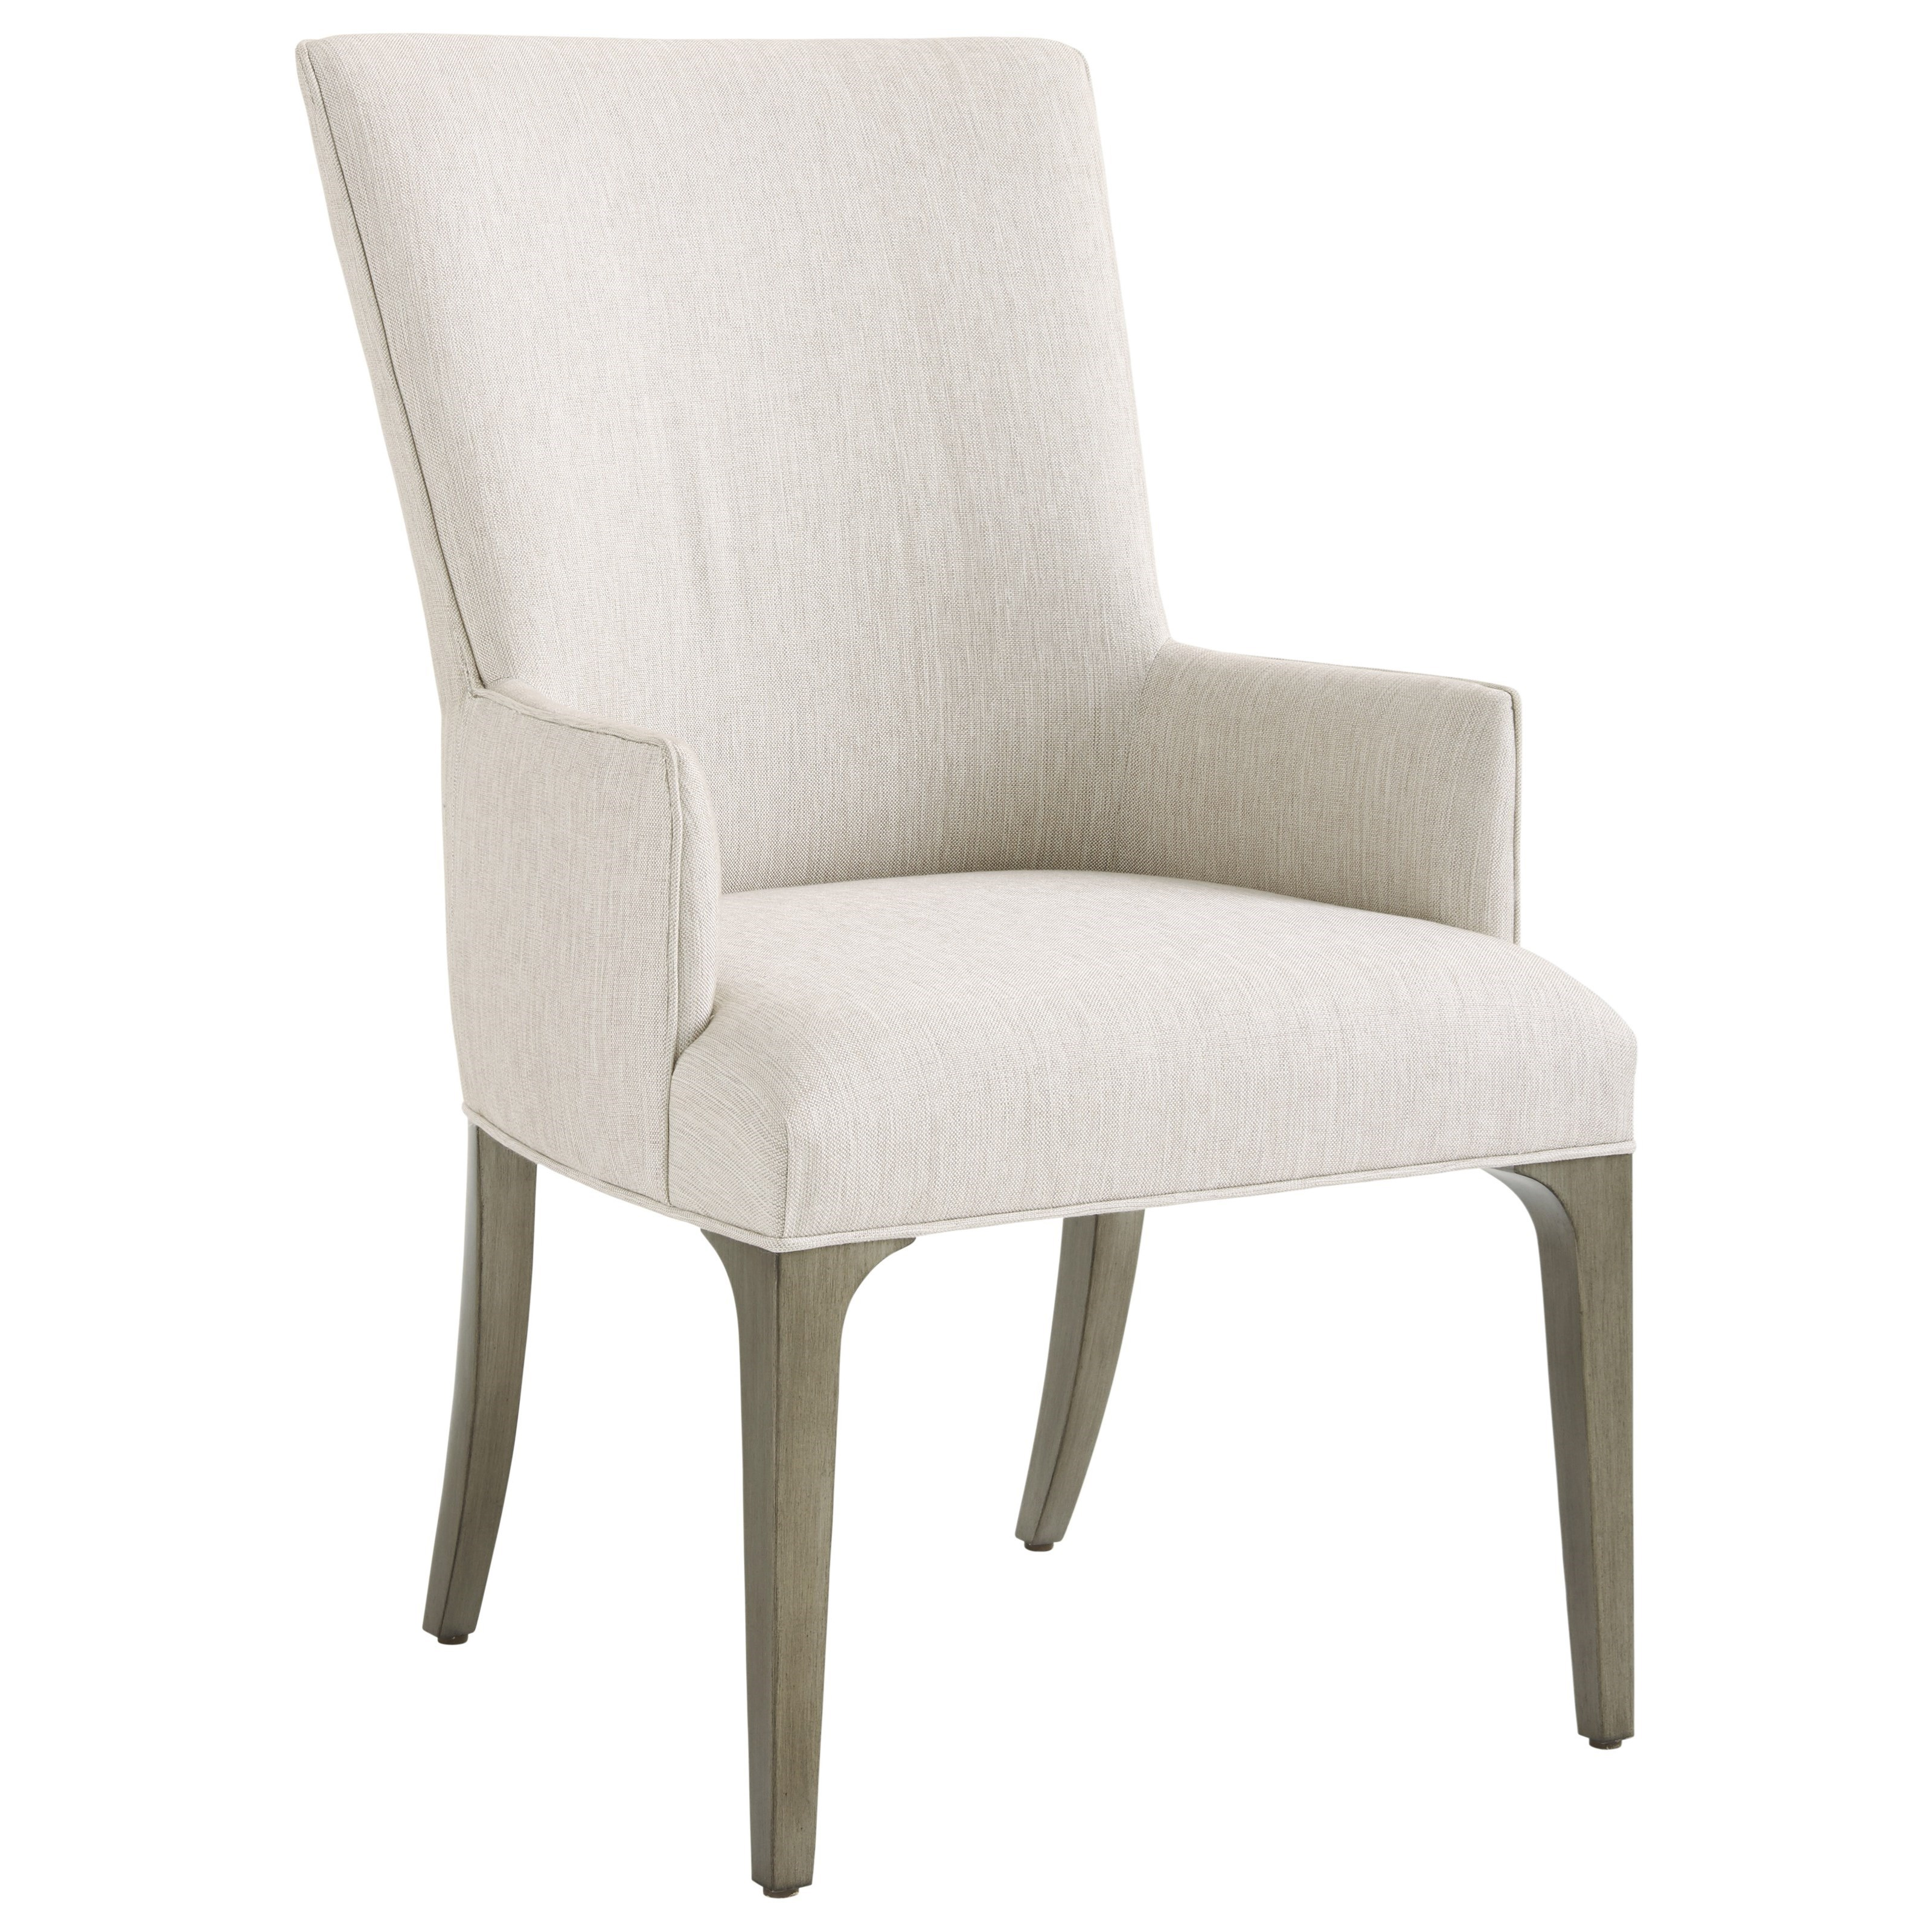 Ariana Bellamy Upholstered Arm Chair (married) by Lexington at Baer's Furniture